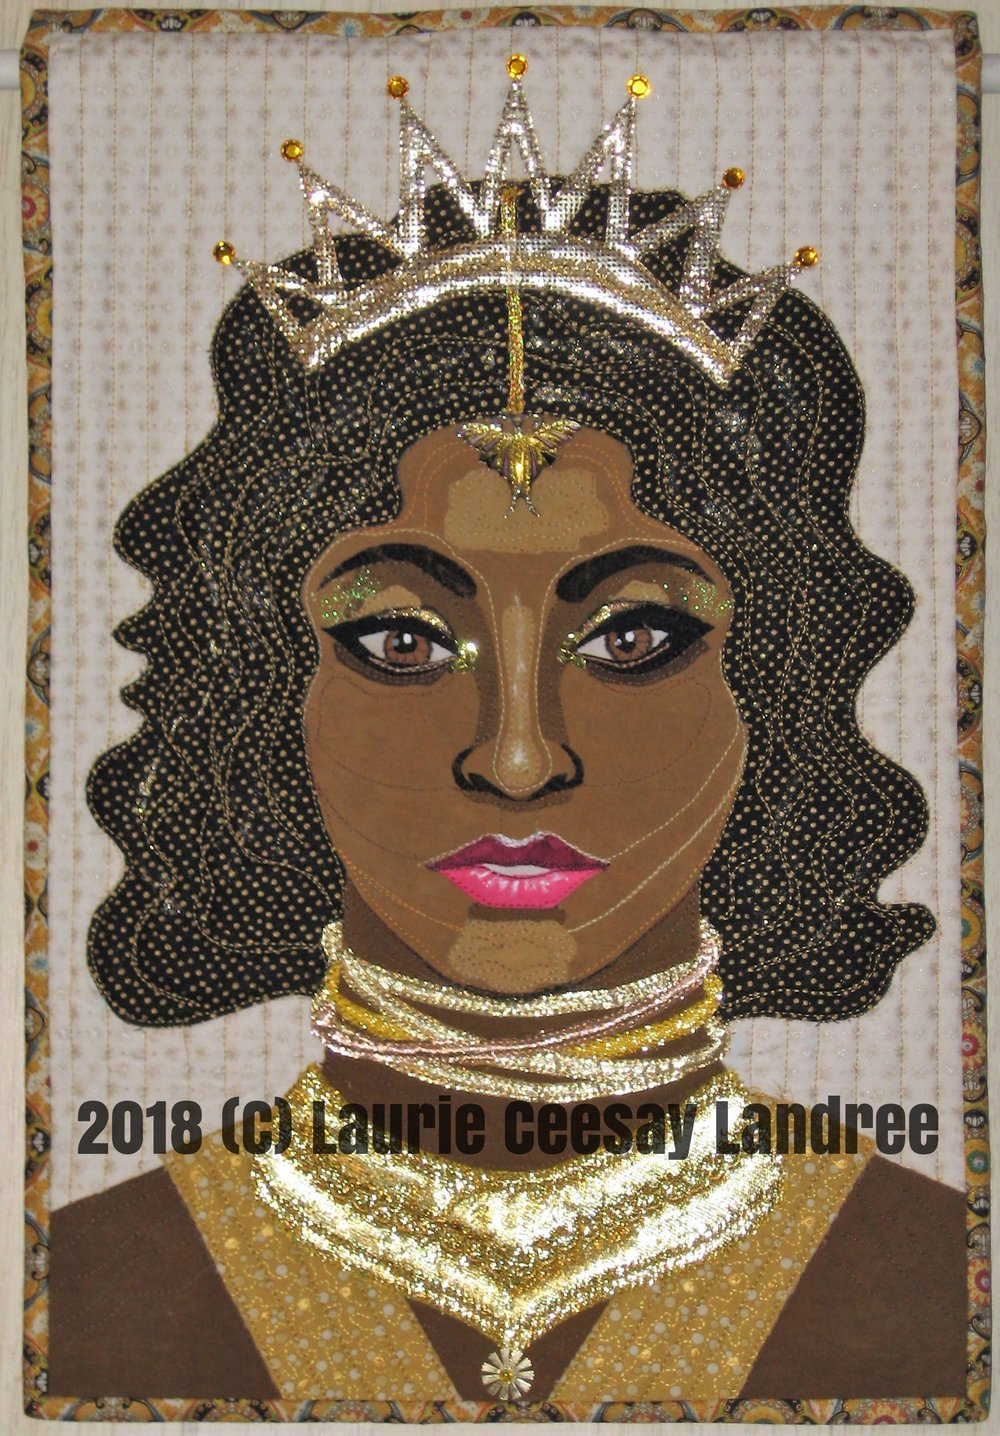 My Facebook art quilt group's current challenge is due for revealing today. The theme was Numbers but with a twist of using a song, book or saying title. I somehow had the Bruno Mars song 24K Magic pop into my head and I thought about a portrait quilt with the use of a bunch of metallic golds and a woman who represents an African/Nubian queen.  I pulled from my stash all potential lames and gold embossed fabrics. I wanted a crown on the woman's head and a lot of necklaces and a collar type thing around her neck. I frequented Pinterest for ideas and ran with what I liked.  I embellished this quilt with a sequin/bead, chunky gold glitter, gold nail polish, gold Dollar Store poster paint, fabric markers, white matte fabric paint, rhinestones, grosgrain ribbon and a repurposed earring hanging on the forehead. I had more than enough trim and bling to make this work so I had to edit out some of the goodies.